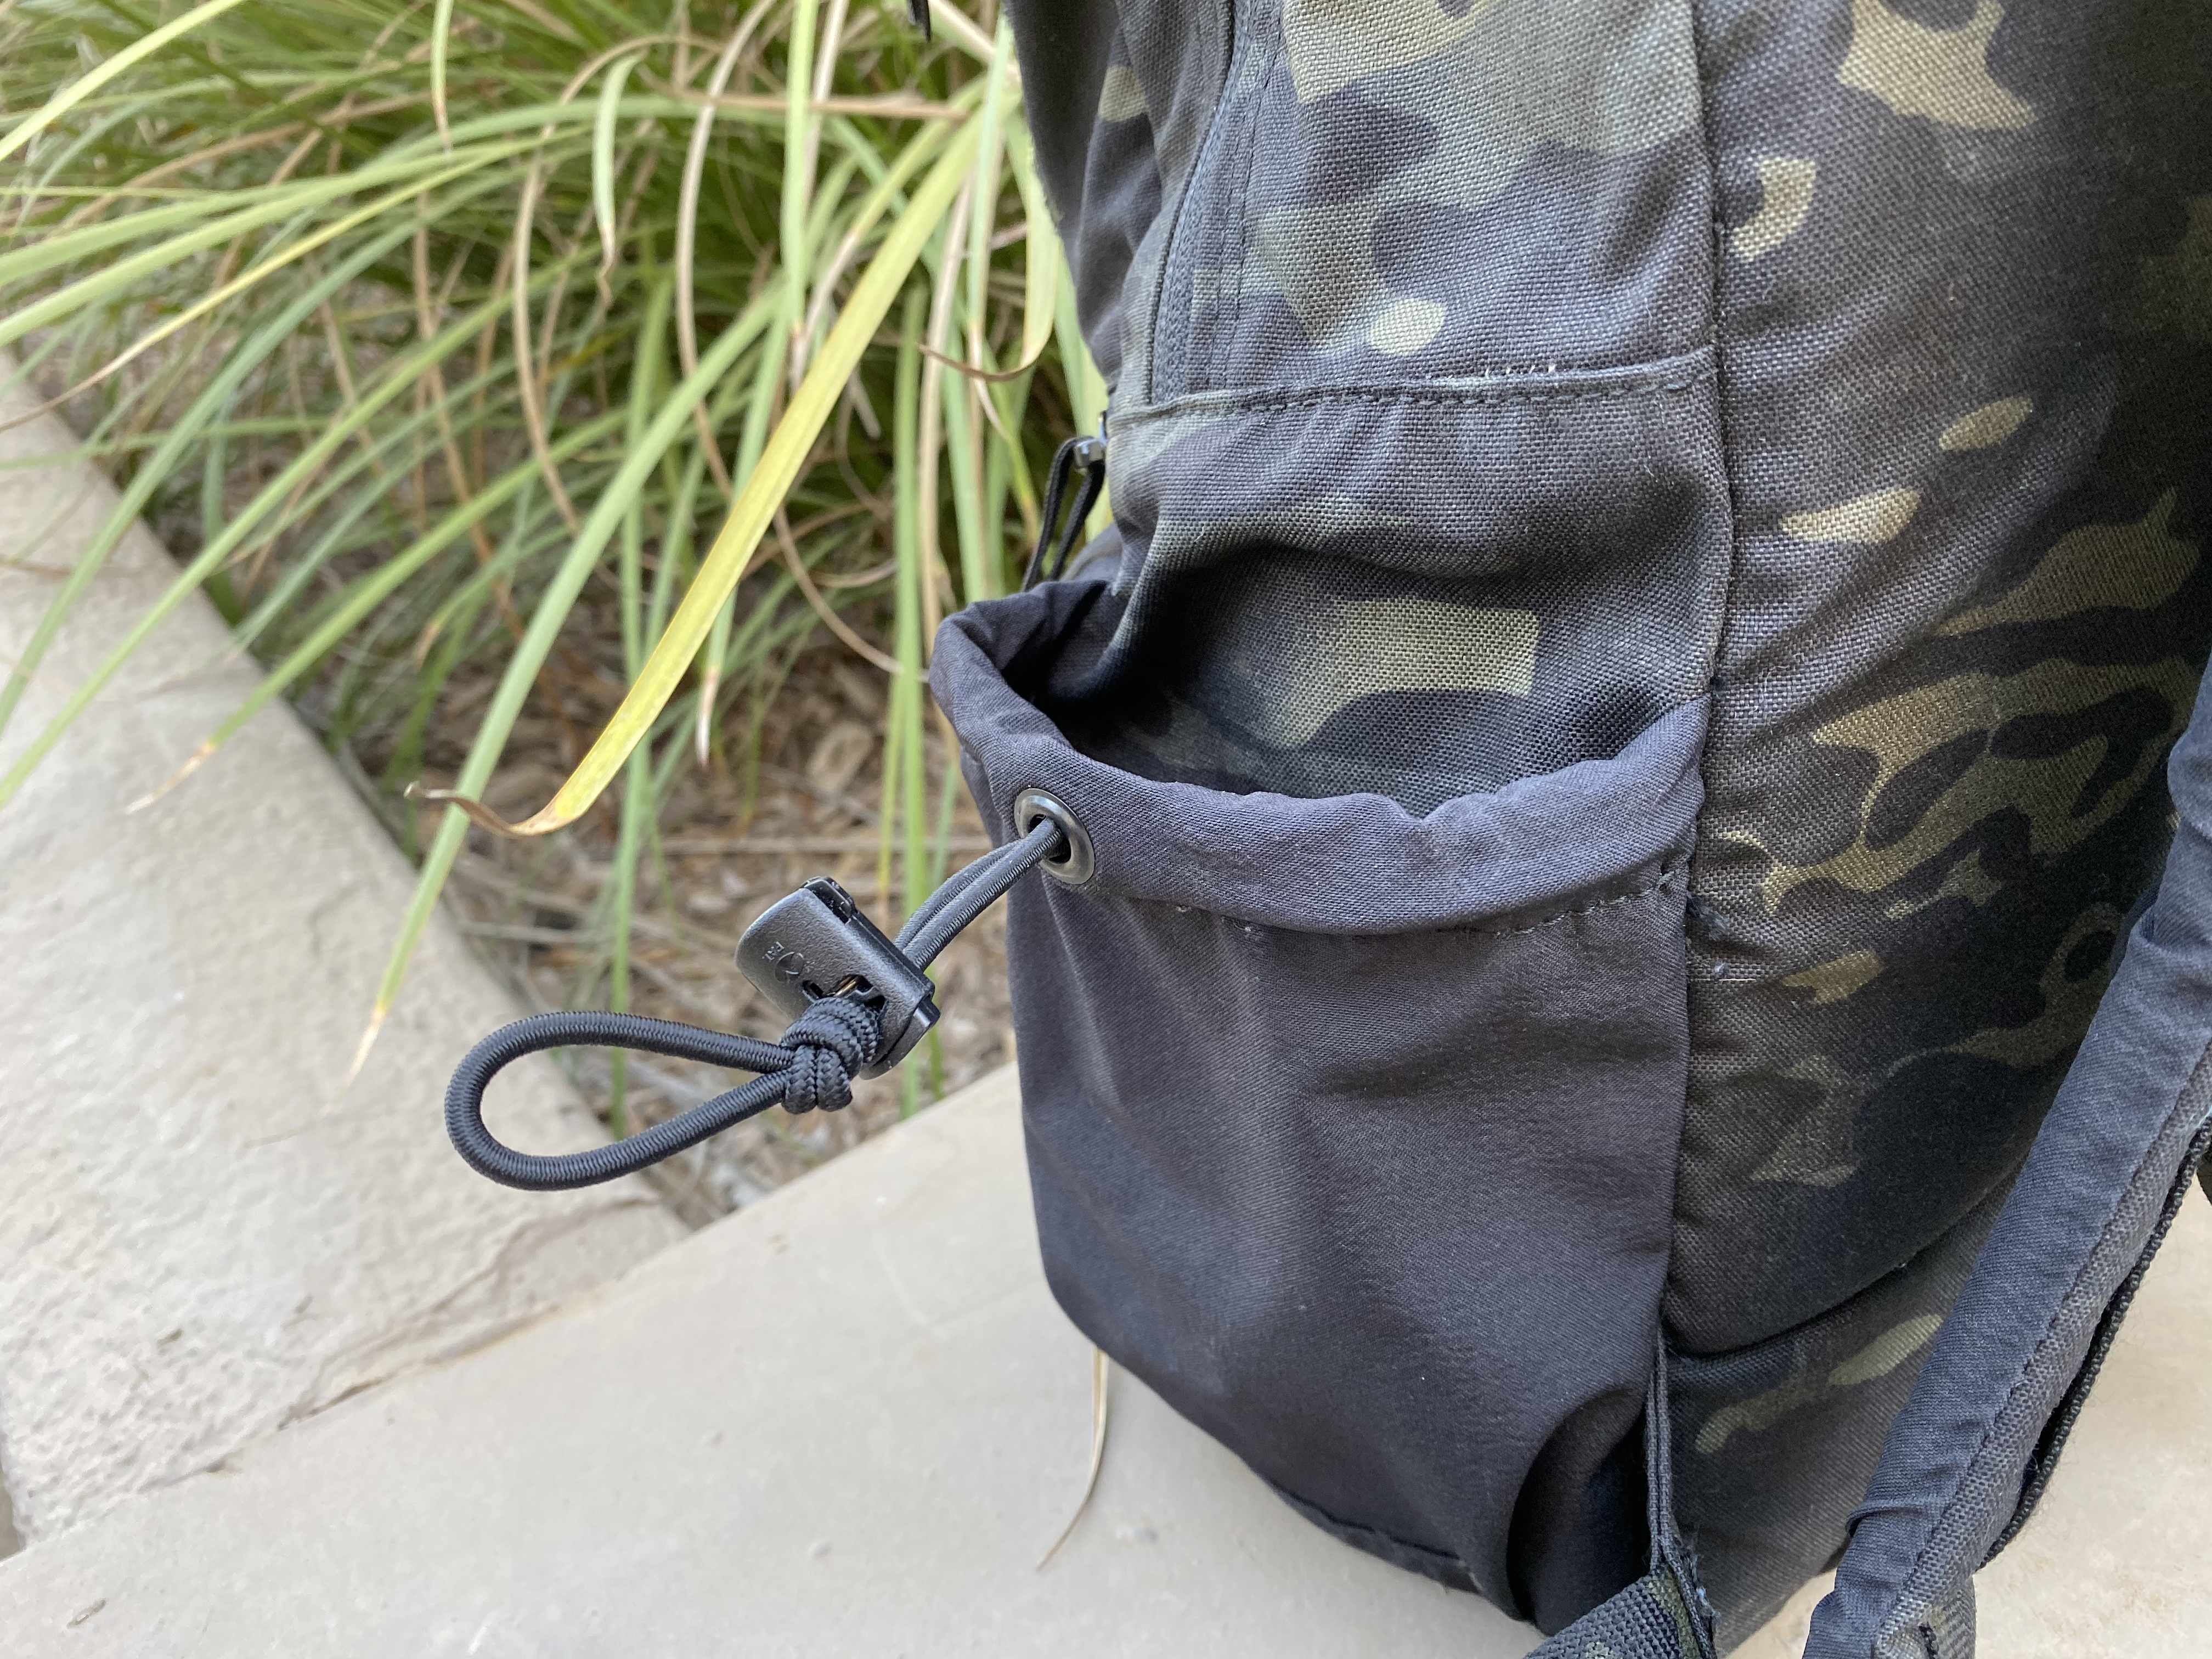 LBD 8005A Day Pack Review waterbottle stash pocket cord